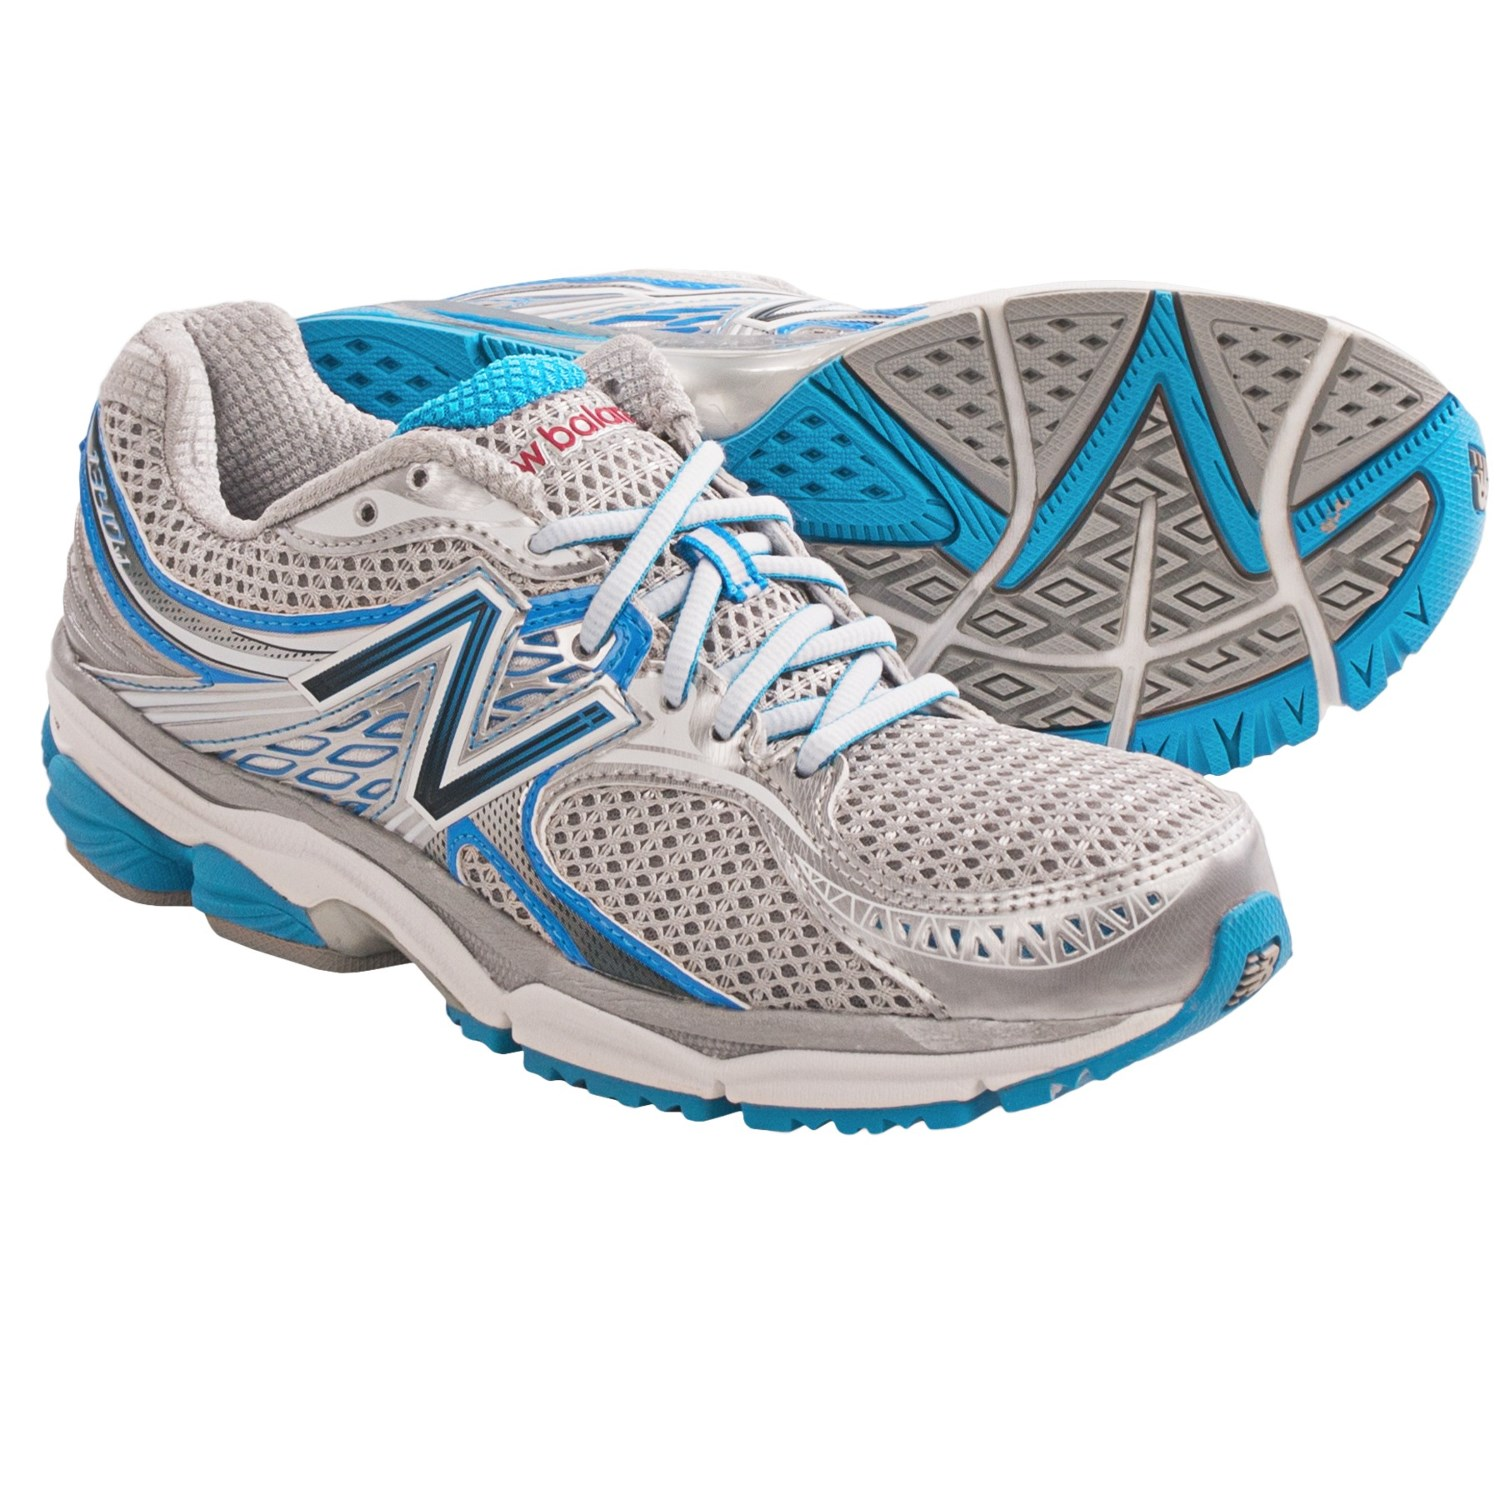 New Balance 1340 Stability Running Shoes (For Women) in Sb Silver/Blue